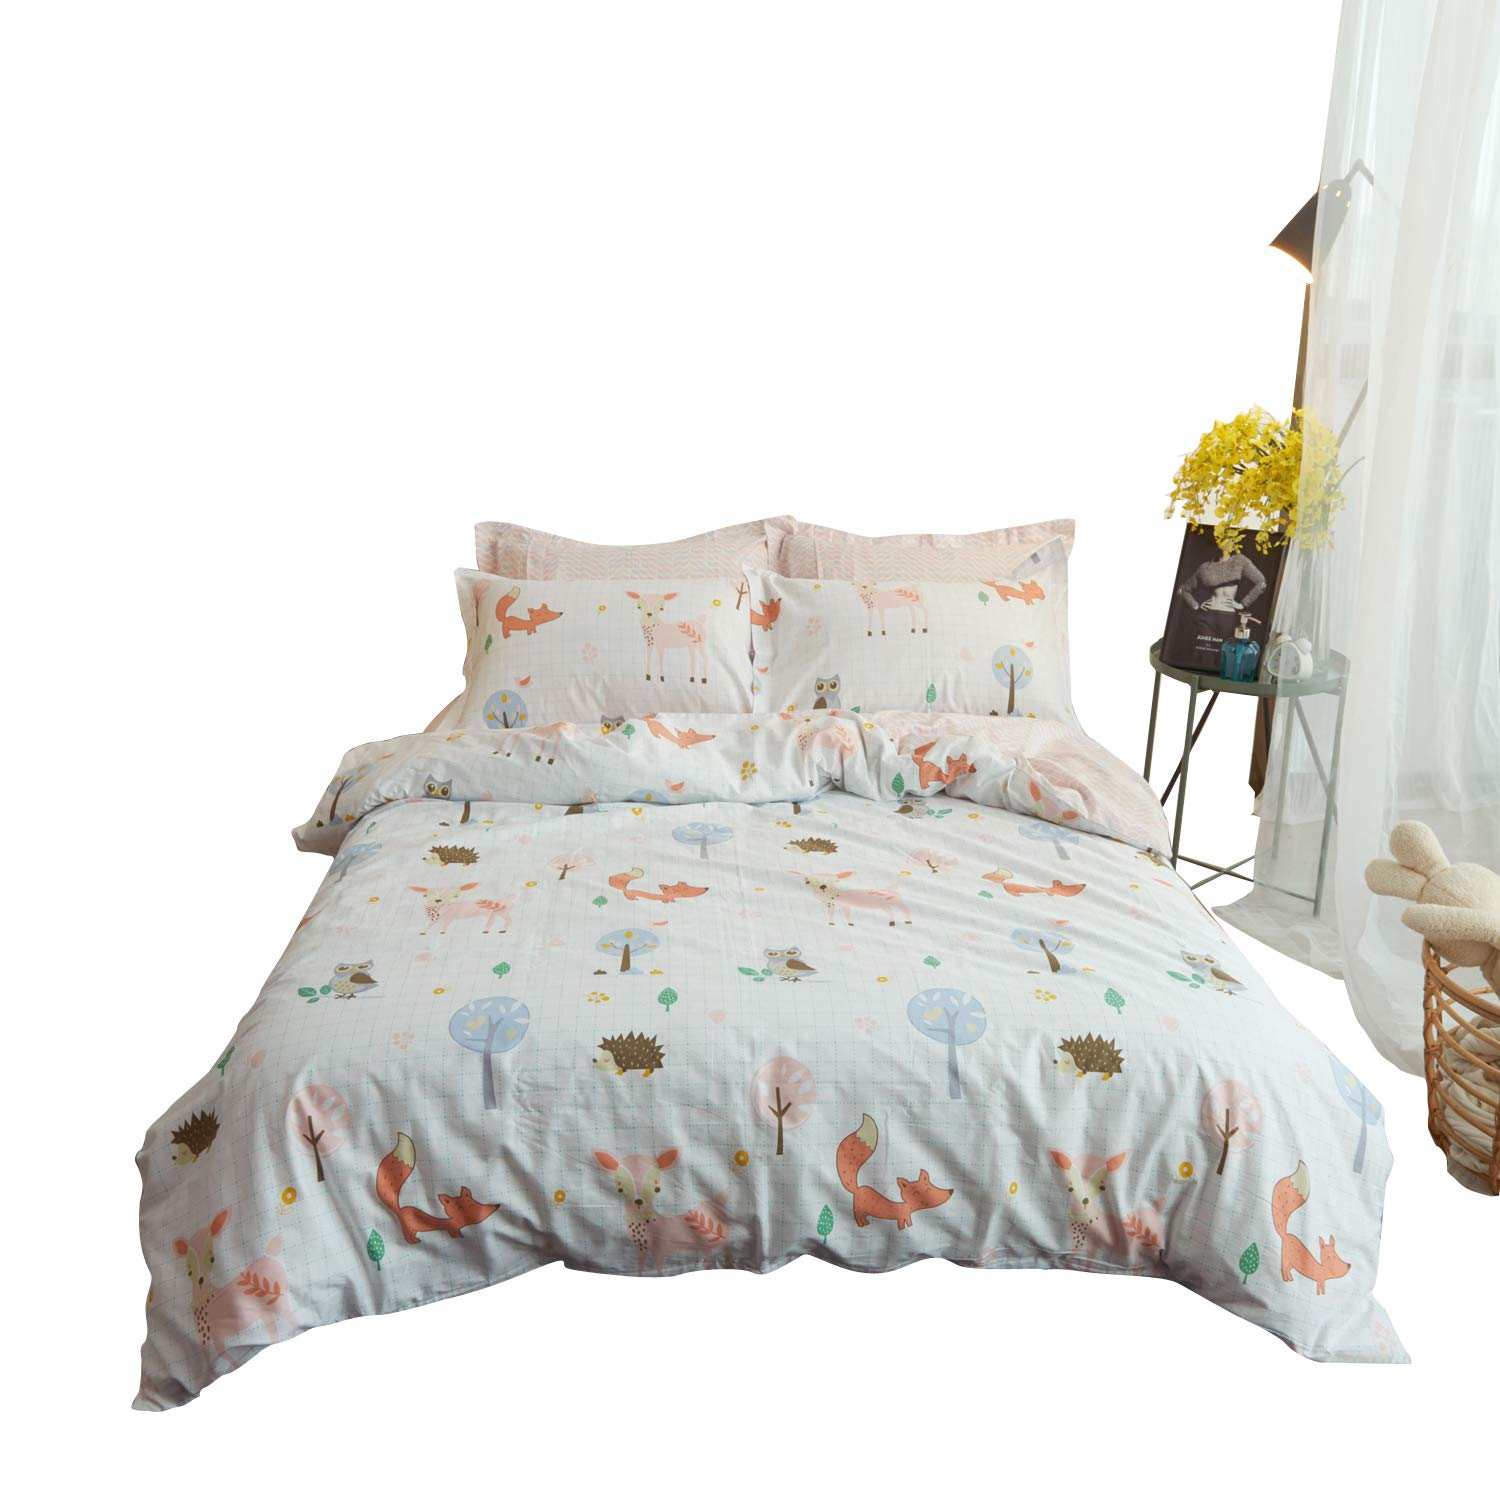 Buildingdream Twin Duvet Cover 100% Cotton Lovely Animal World Fox Kids Duvet Cover 68 x 90 Super Soft Breathable 2 Pieces Hotel Bedding Sets with Zipper Closure(Animal World,Twin)